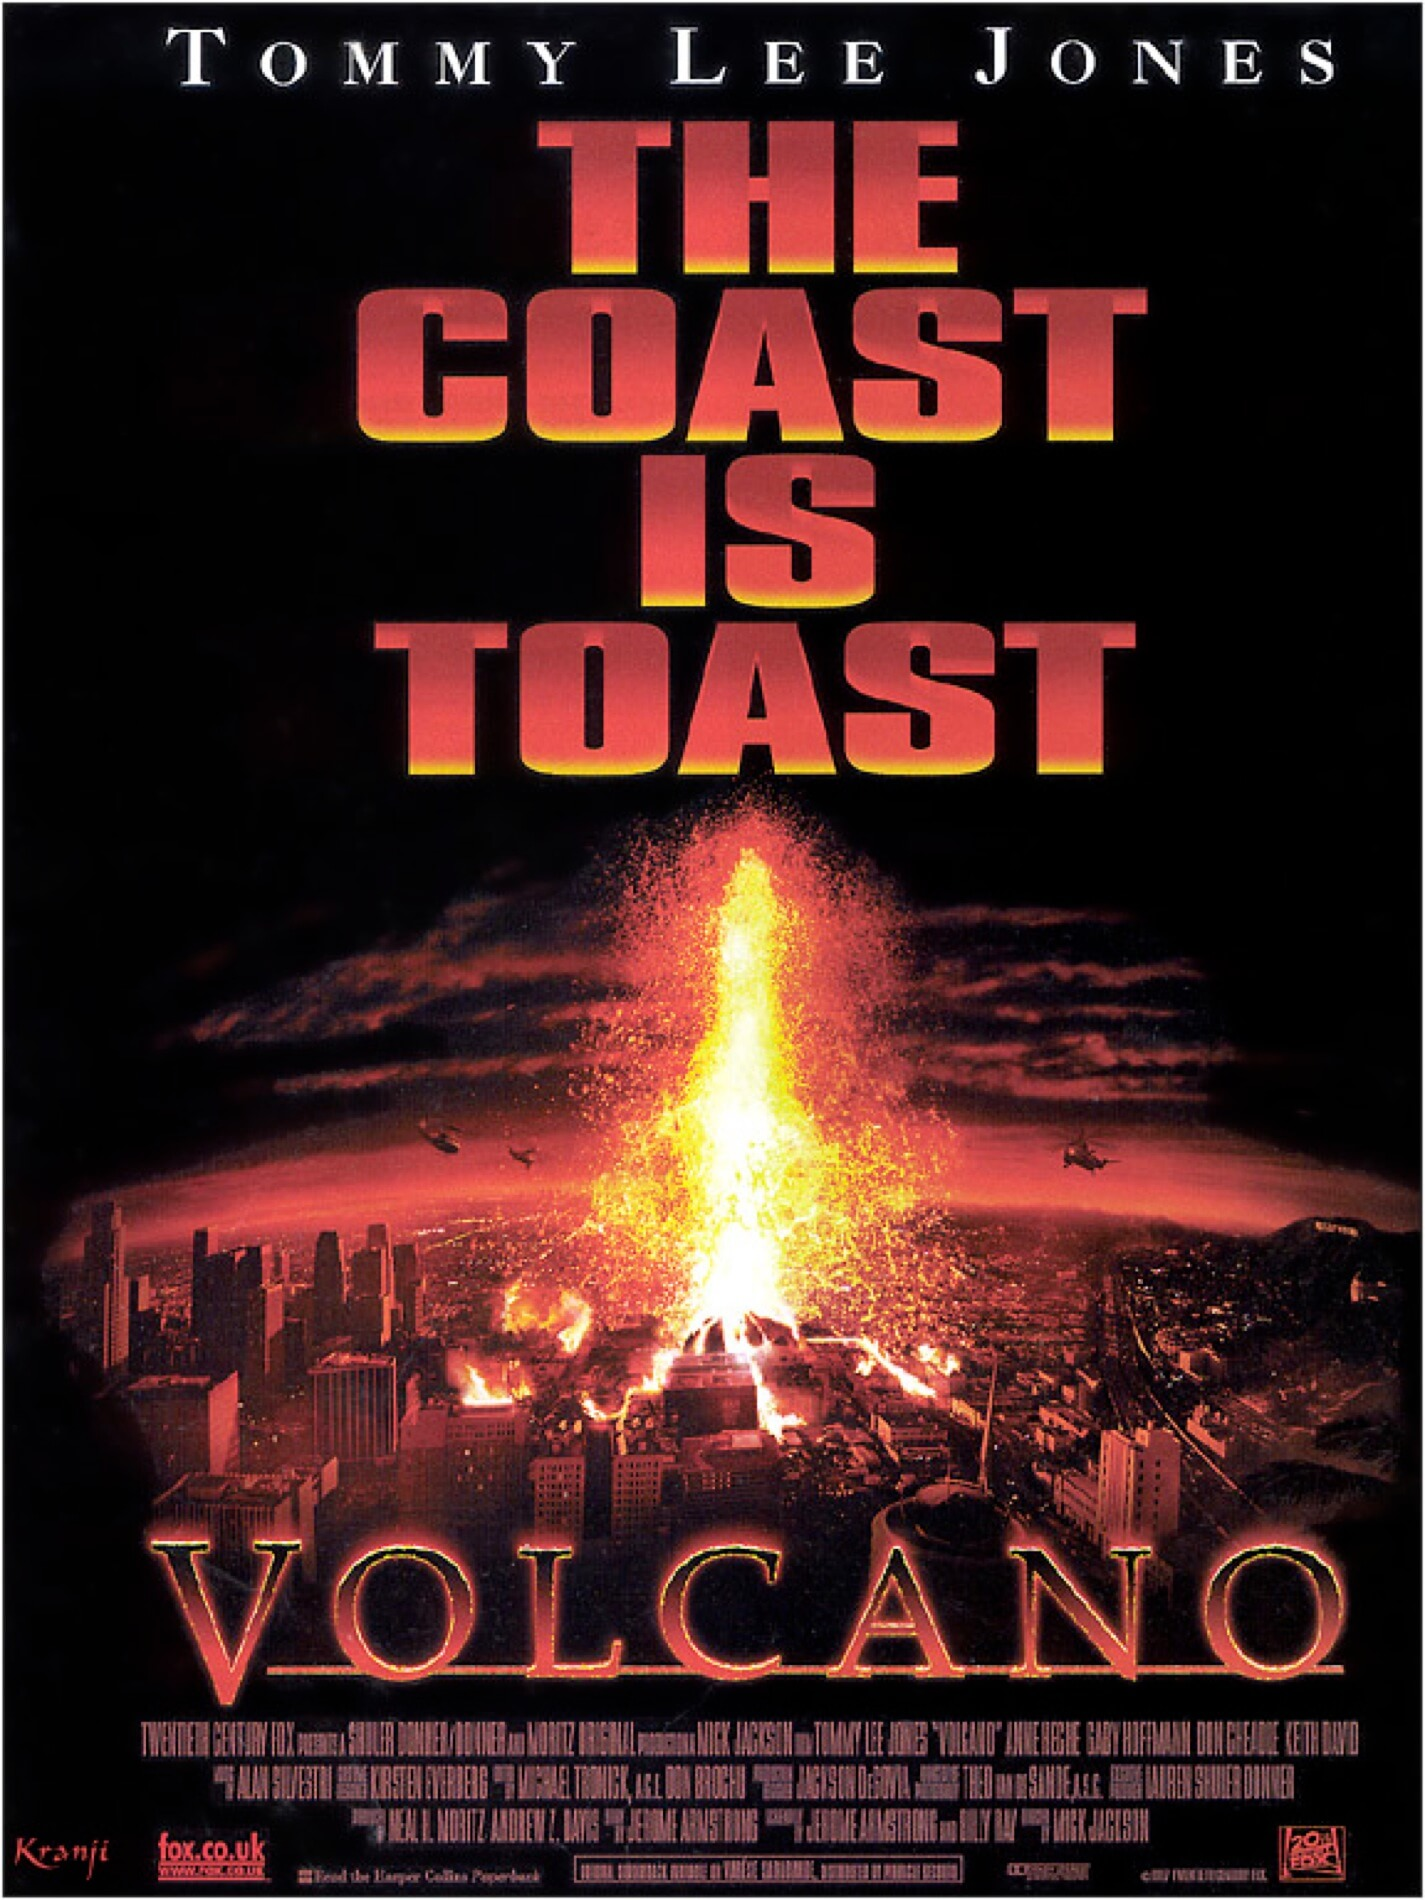 It was never going to win any Oscars, but hey, there is a VOLCANO!